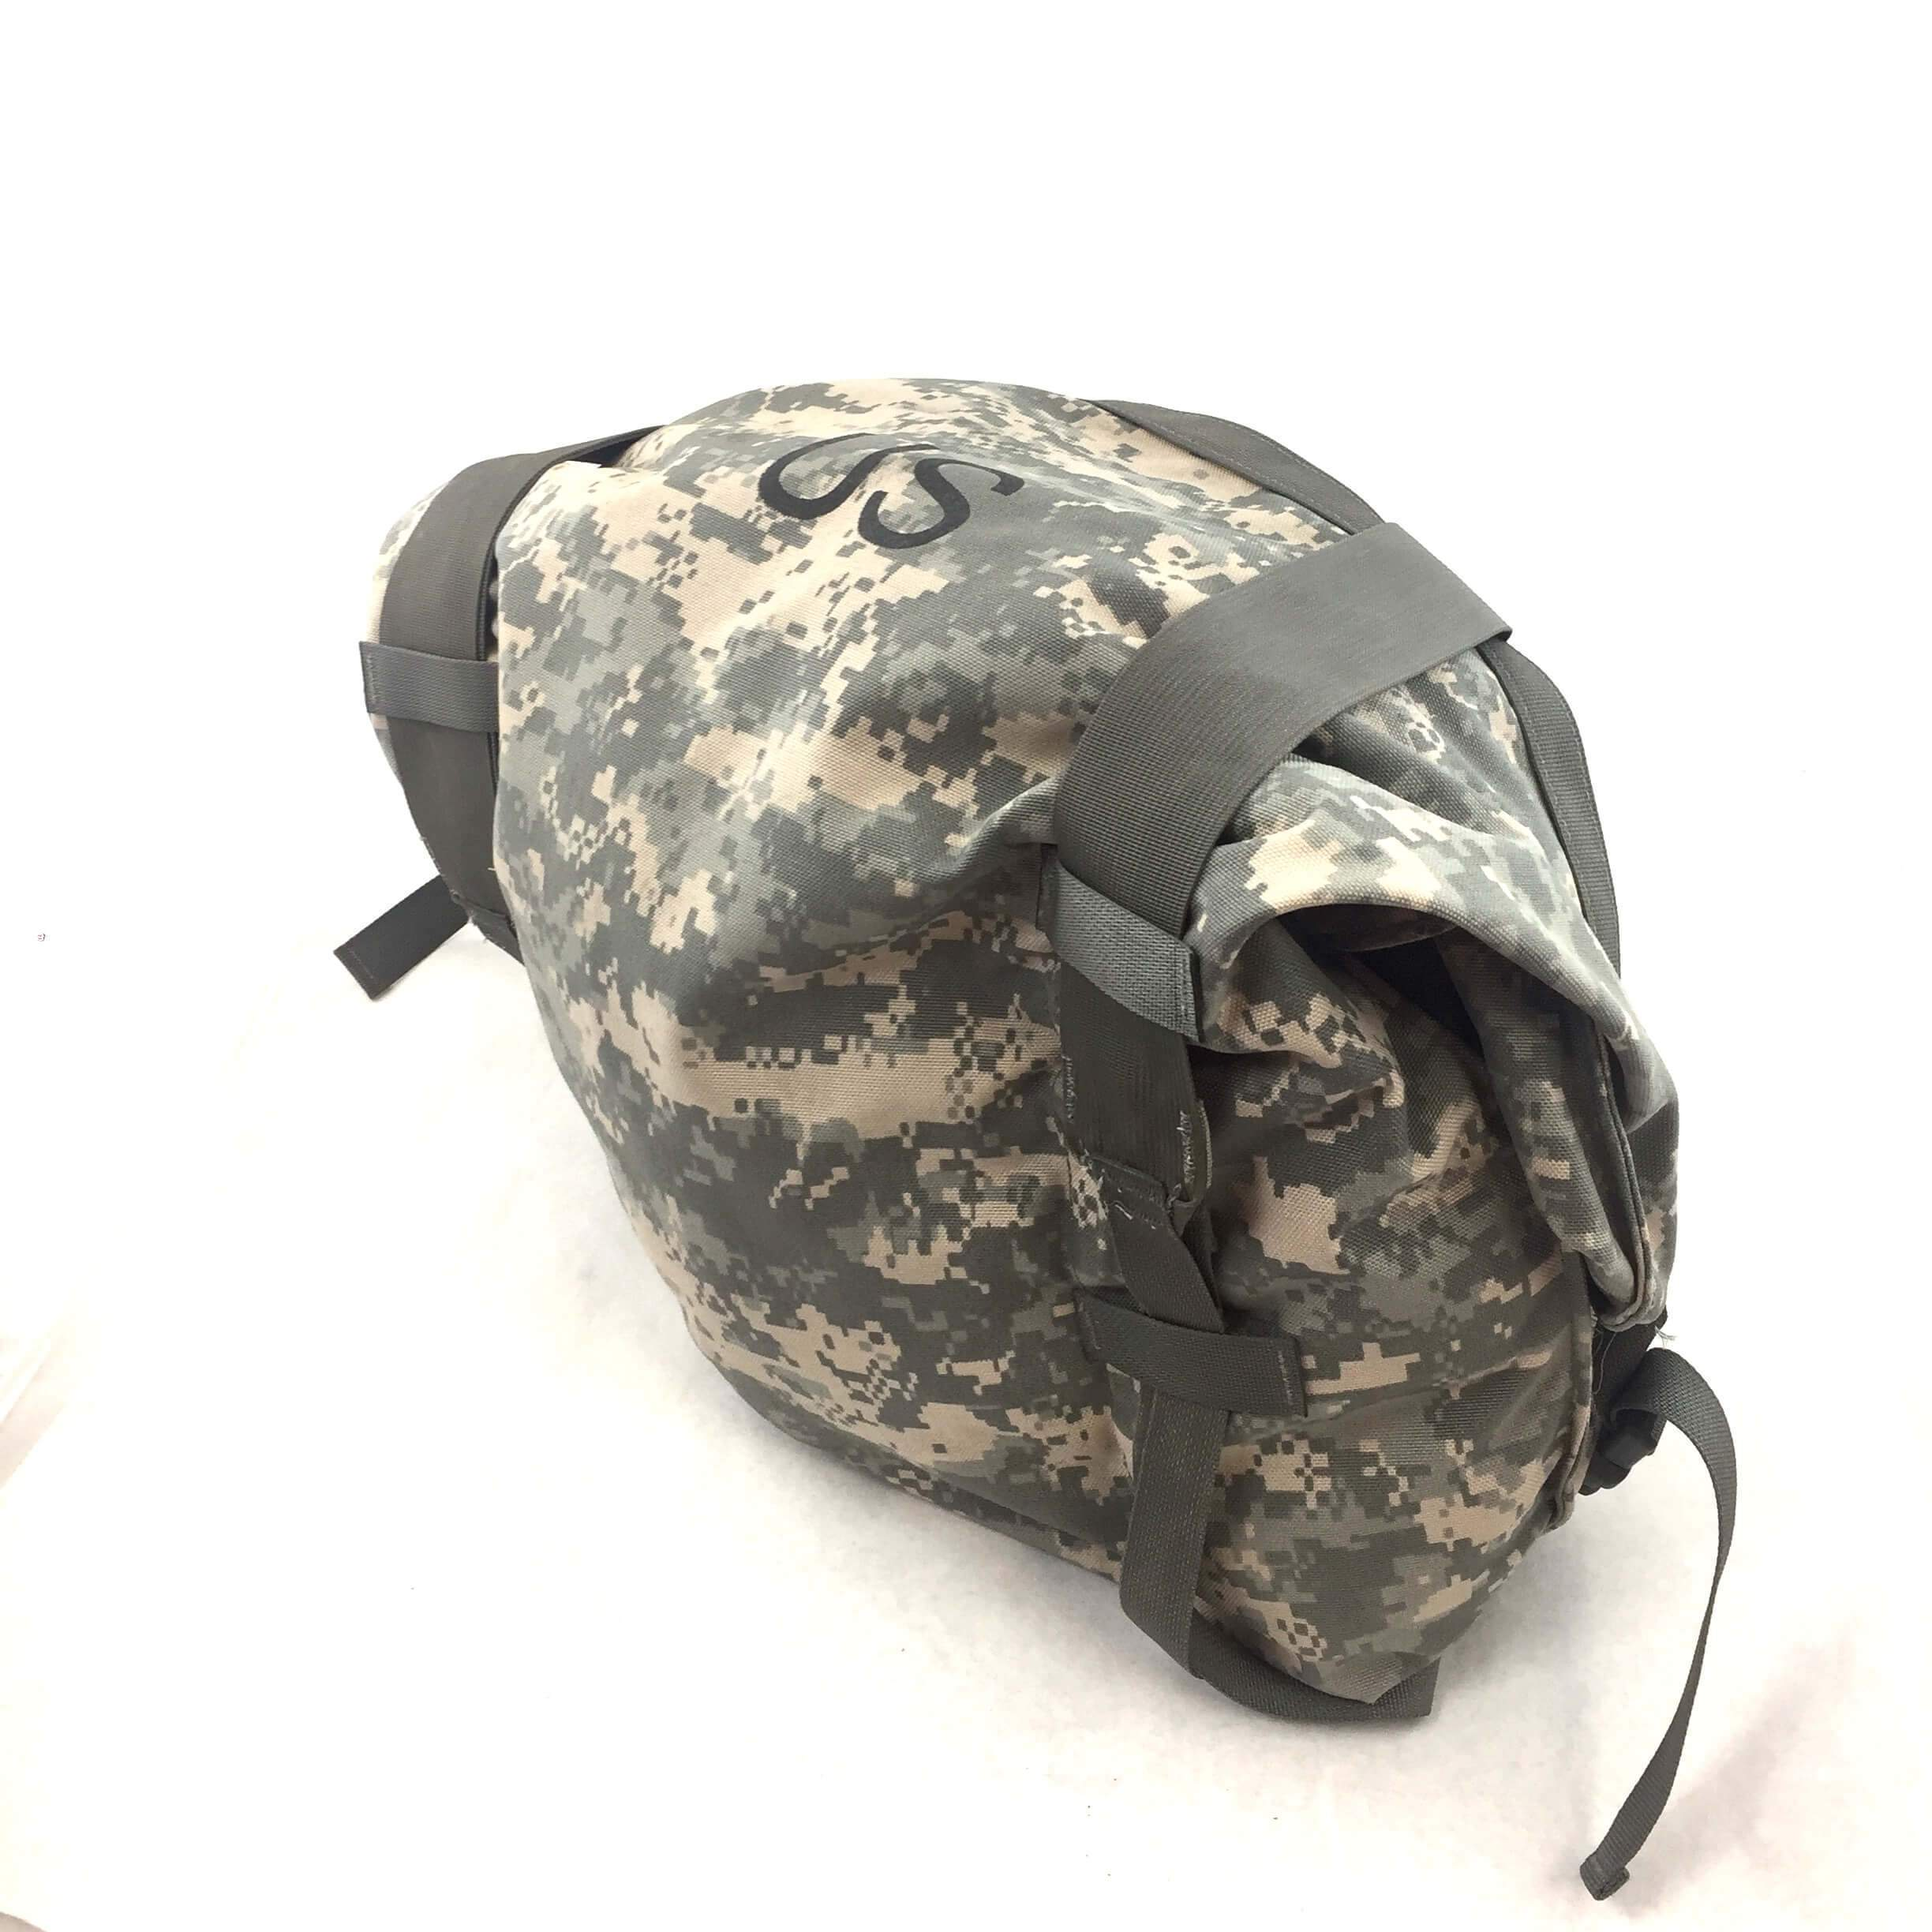 Pre-owned JSList Chemical Protective Gear Bag